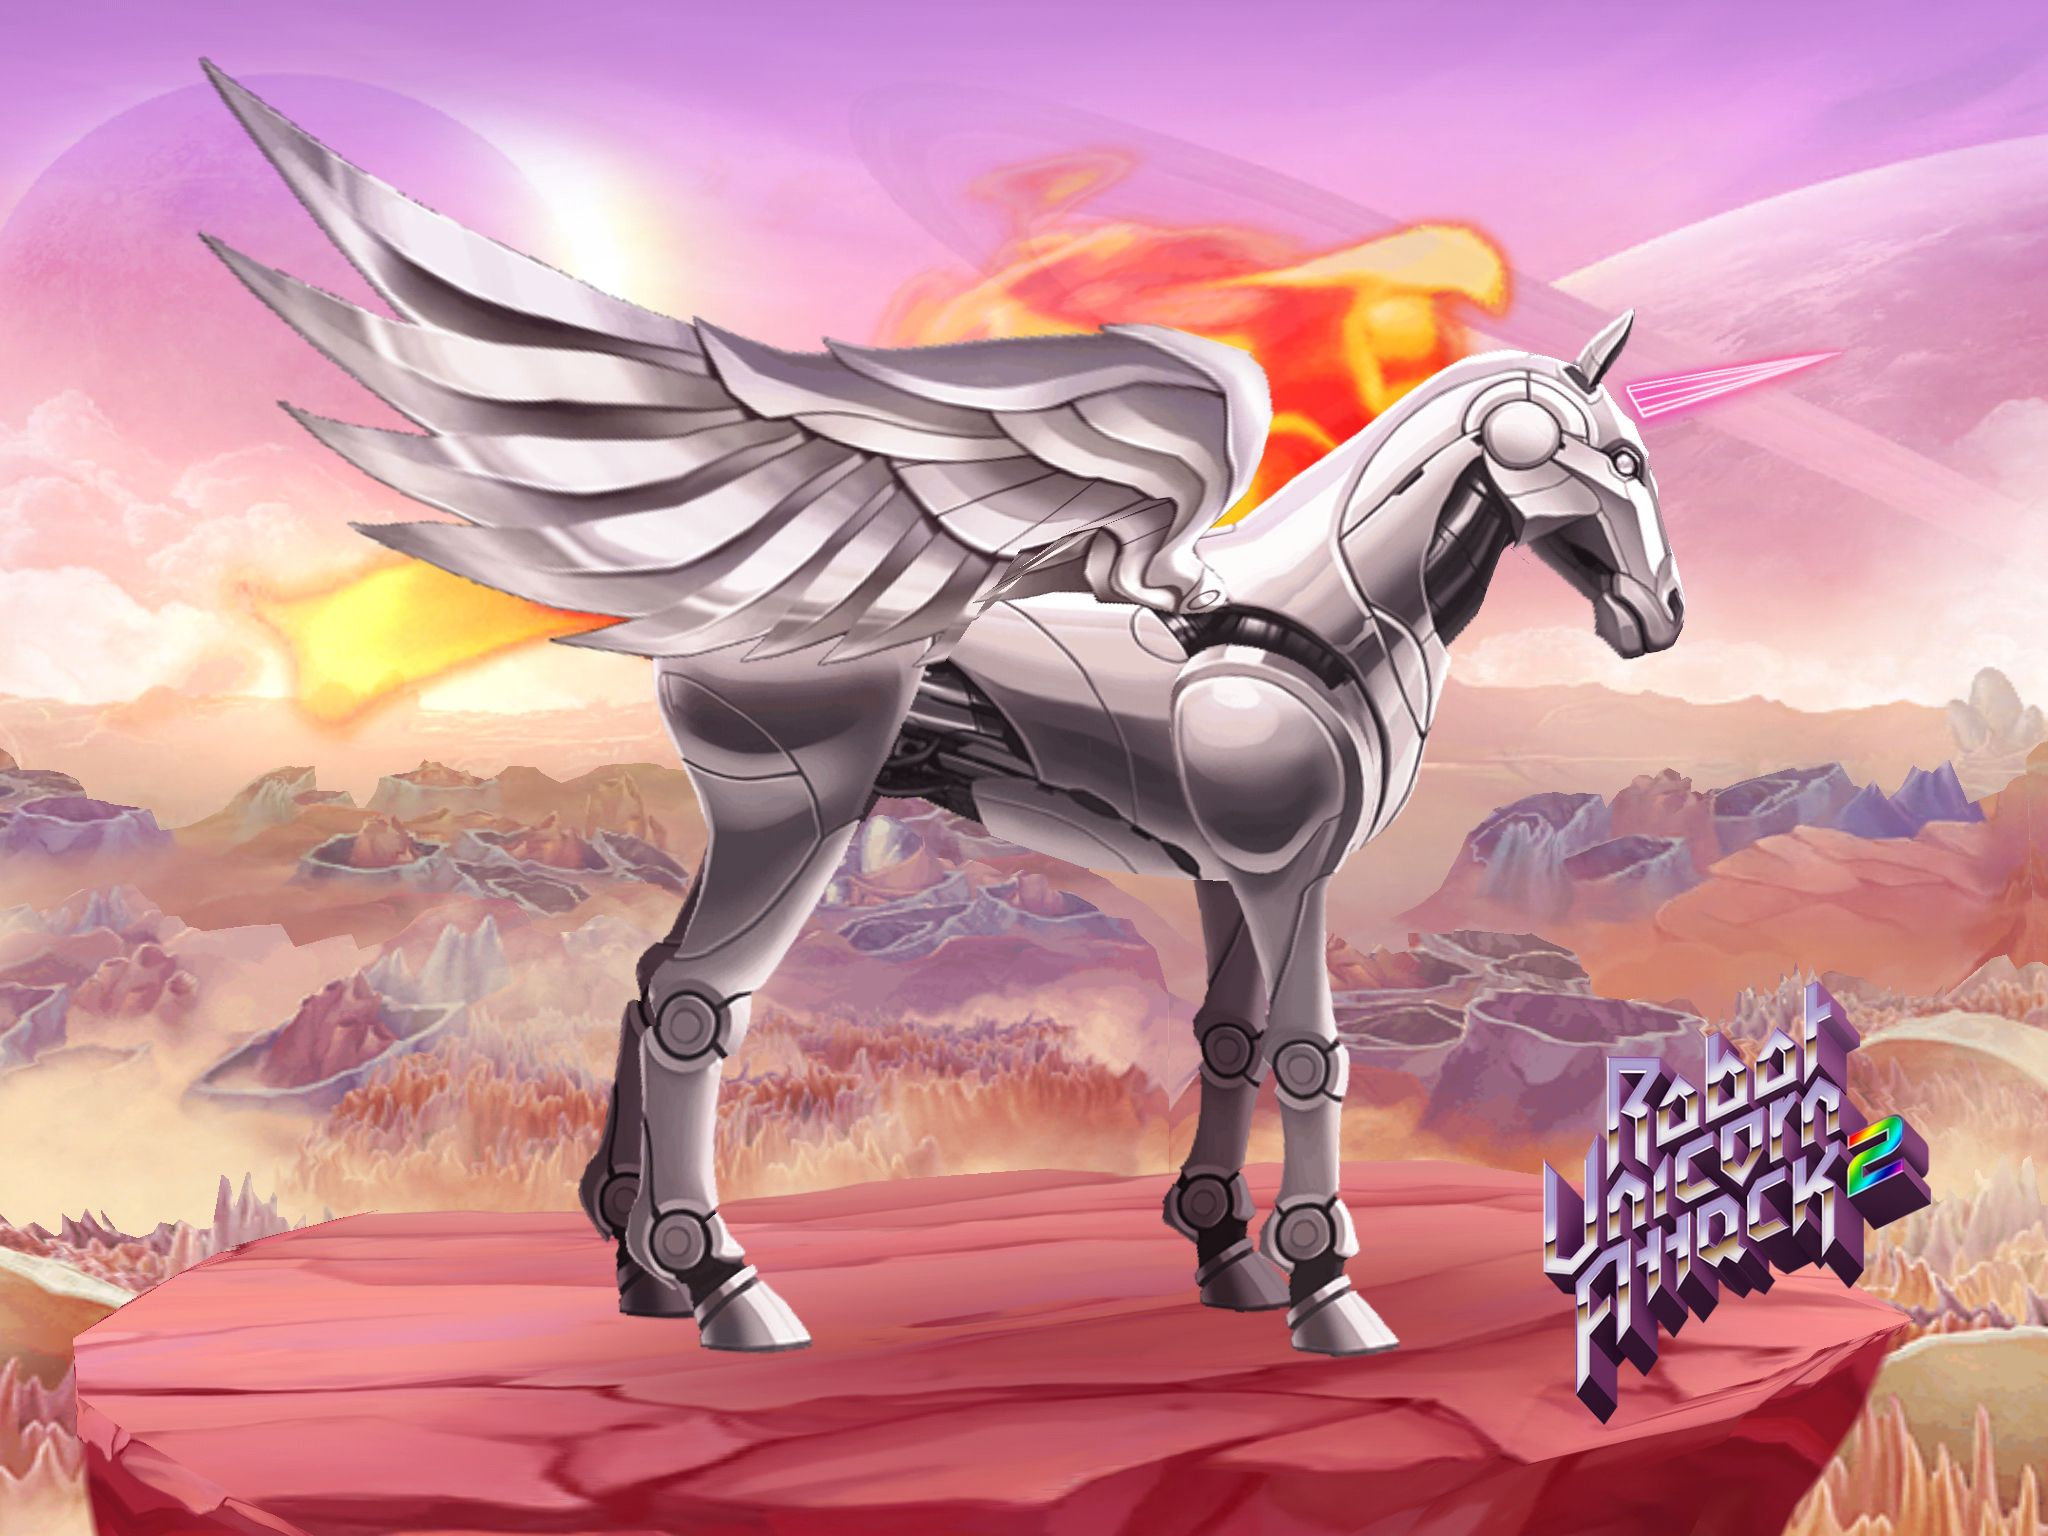 Check out my awesome robot unicorn create your own in